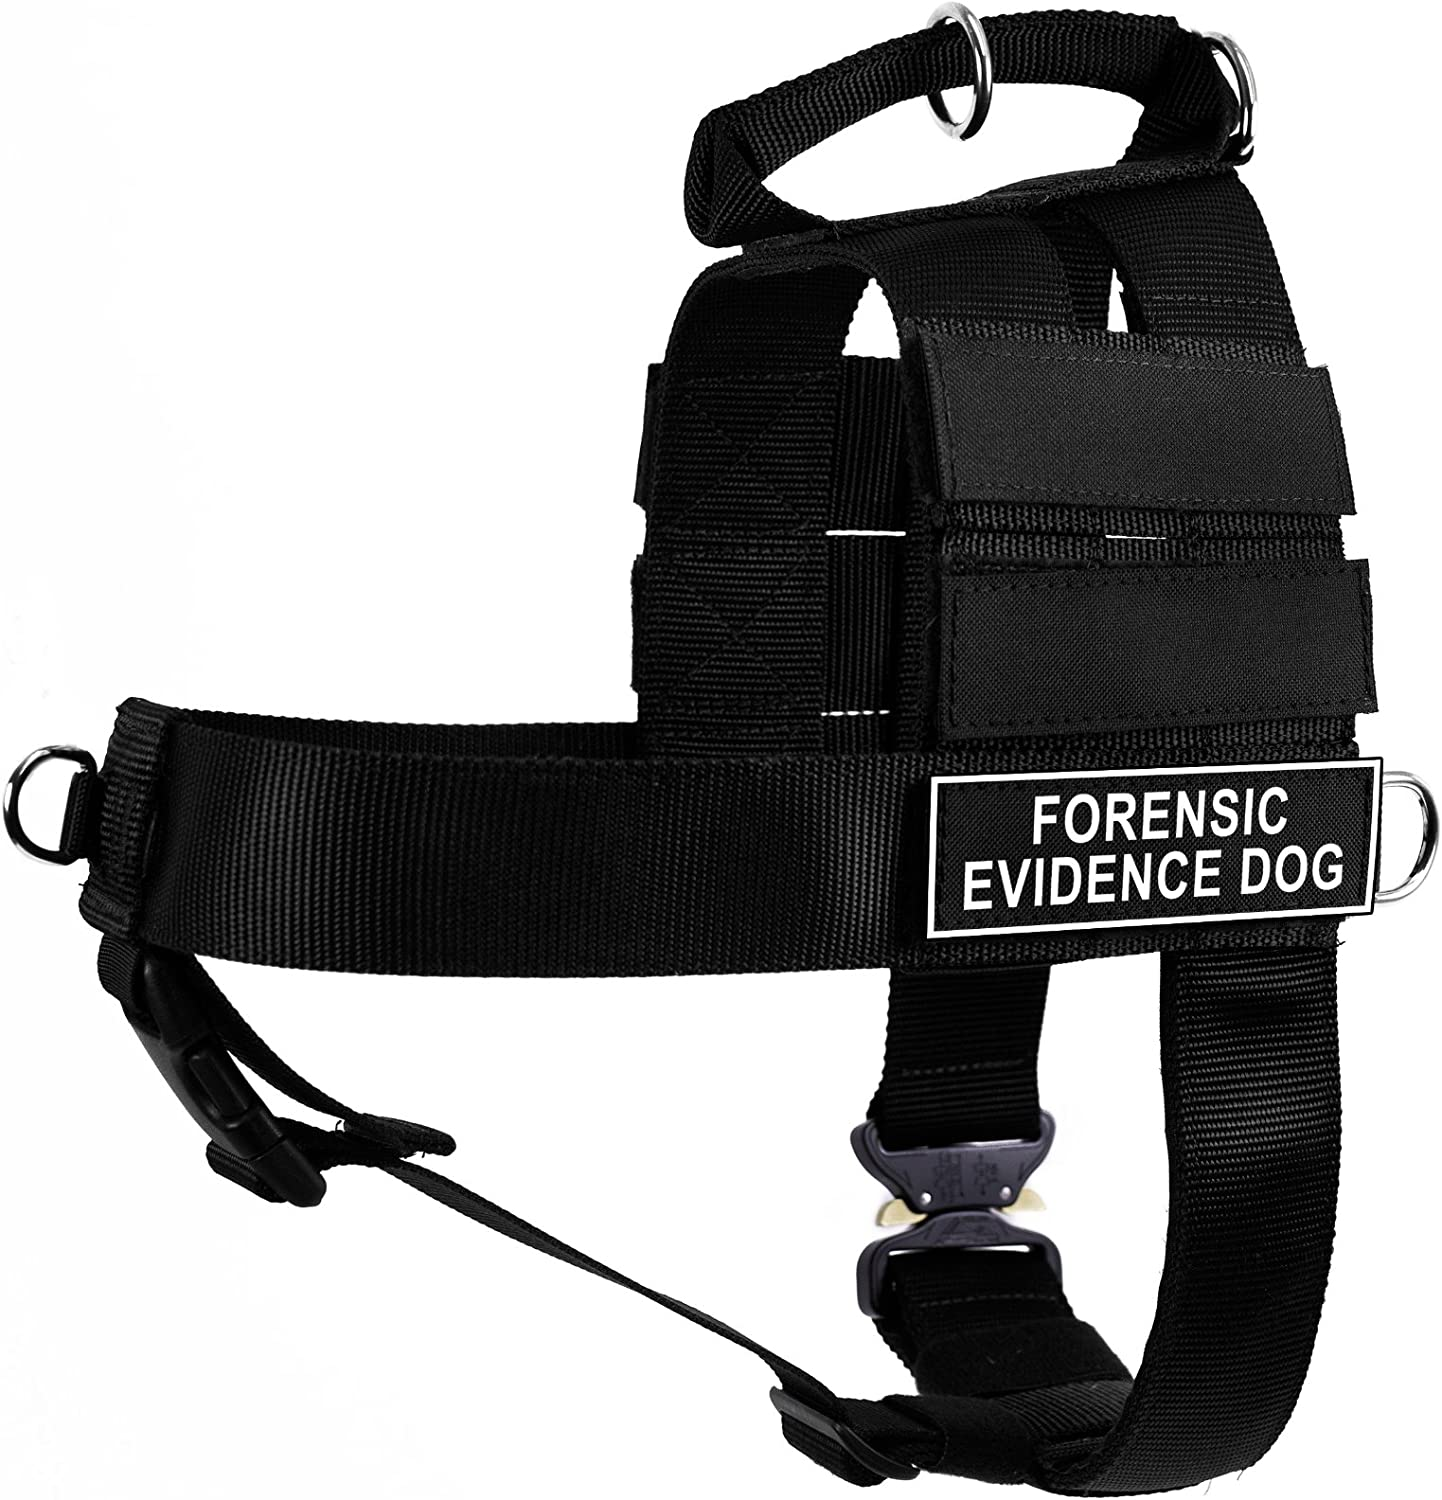 Dean & Tyler DT Cobra Forensic Evidence Dog No Pull Harness, Small, Black